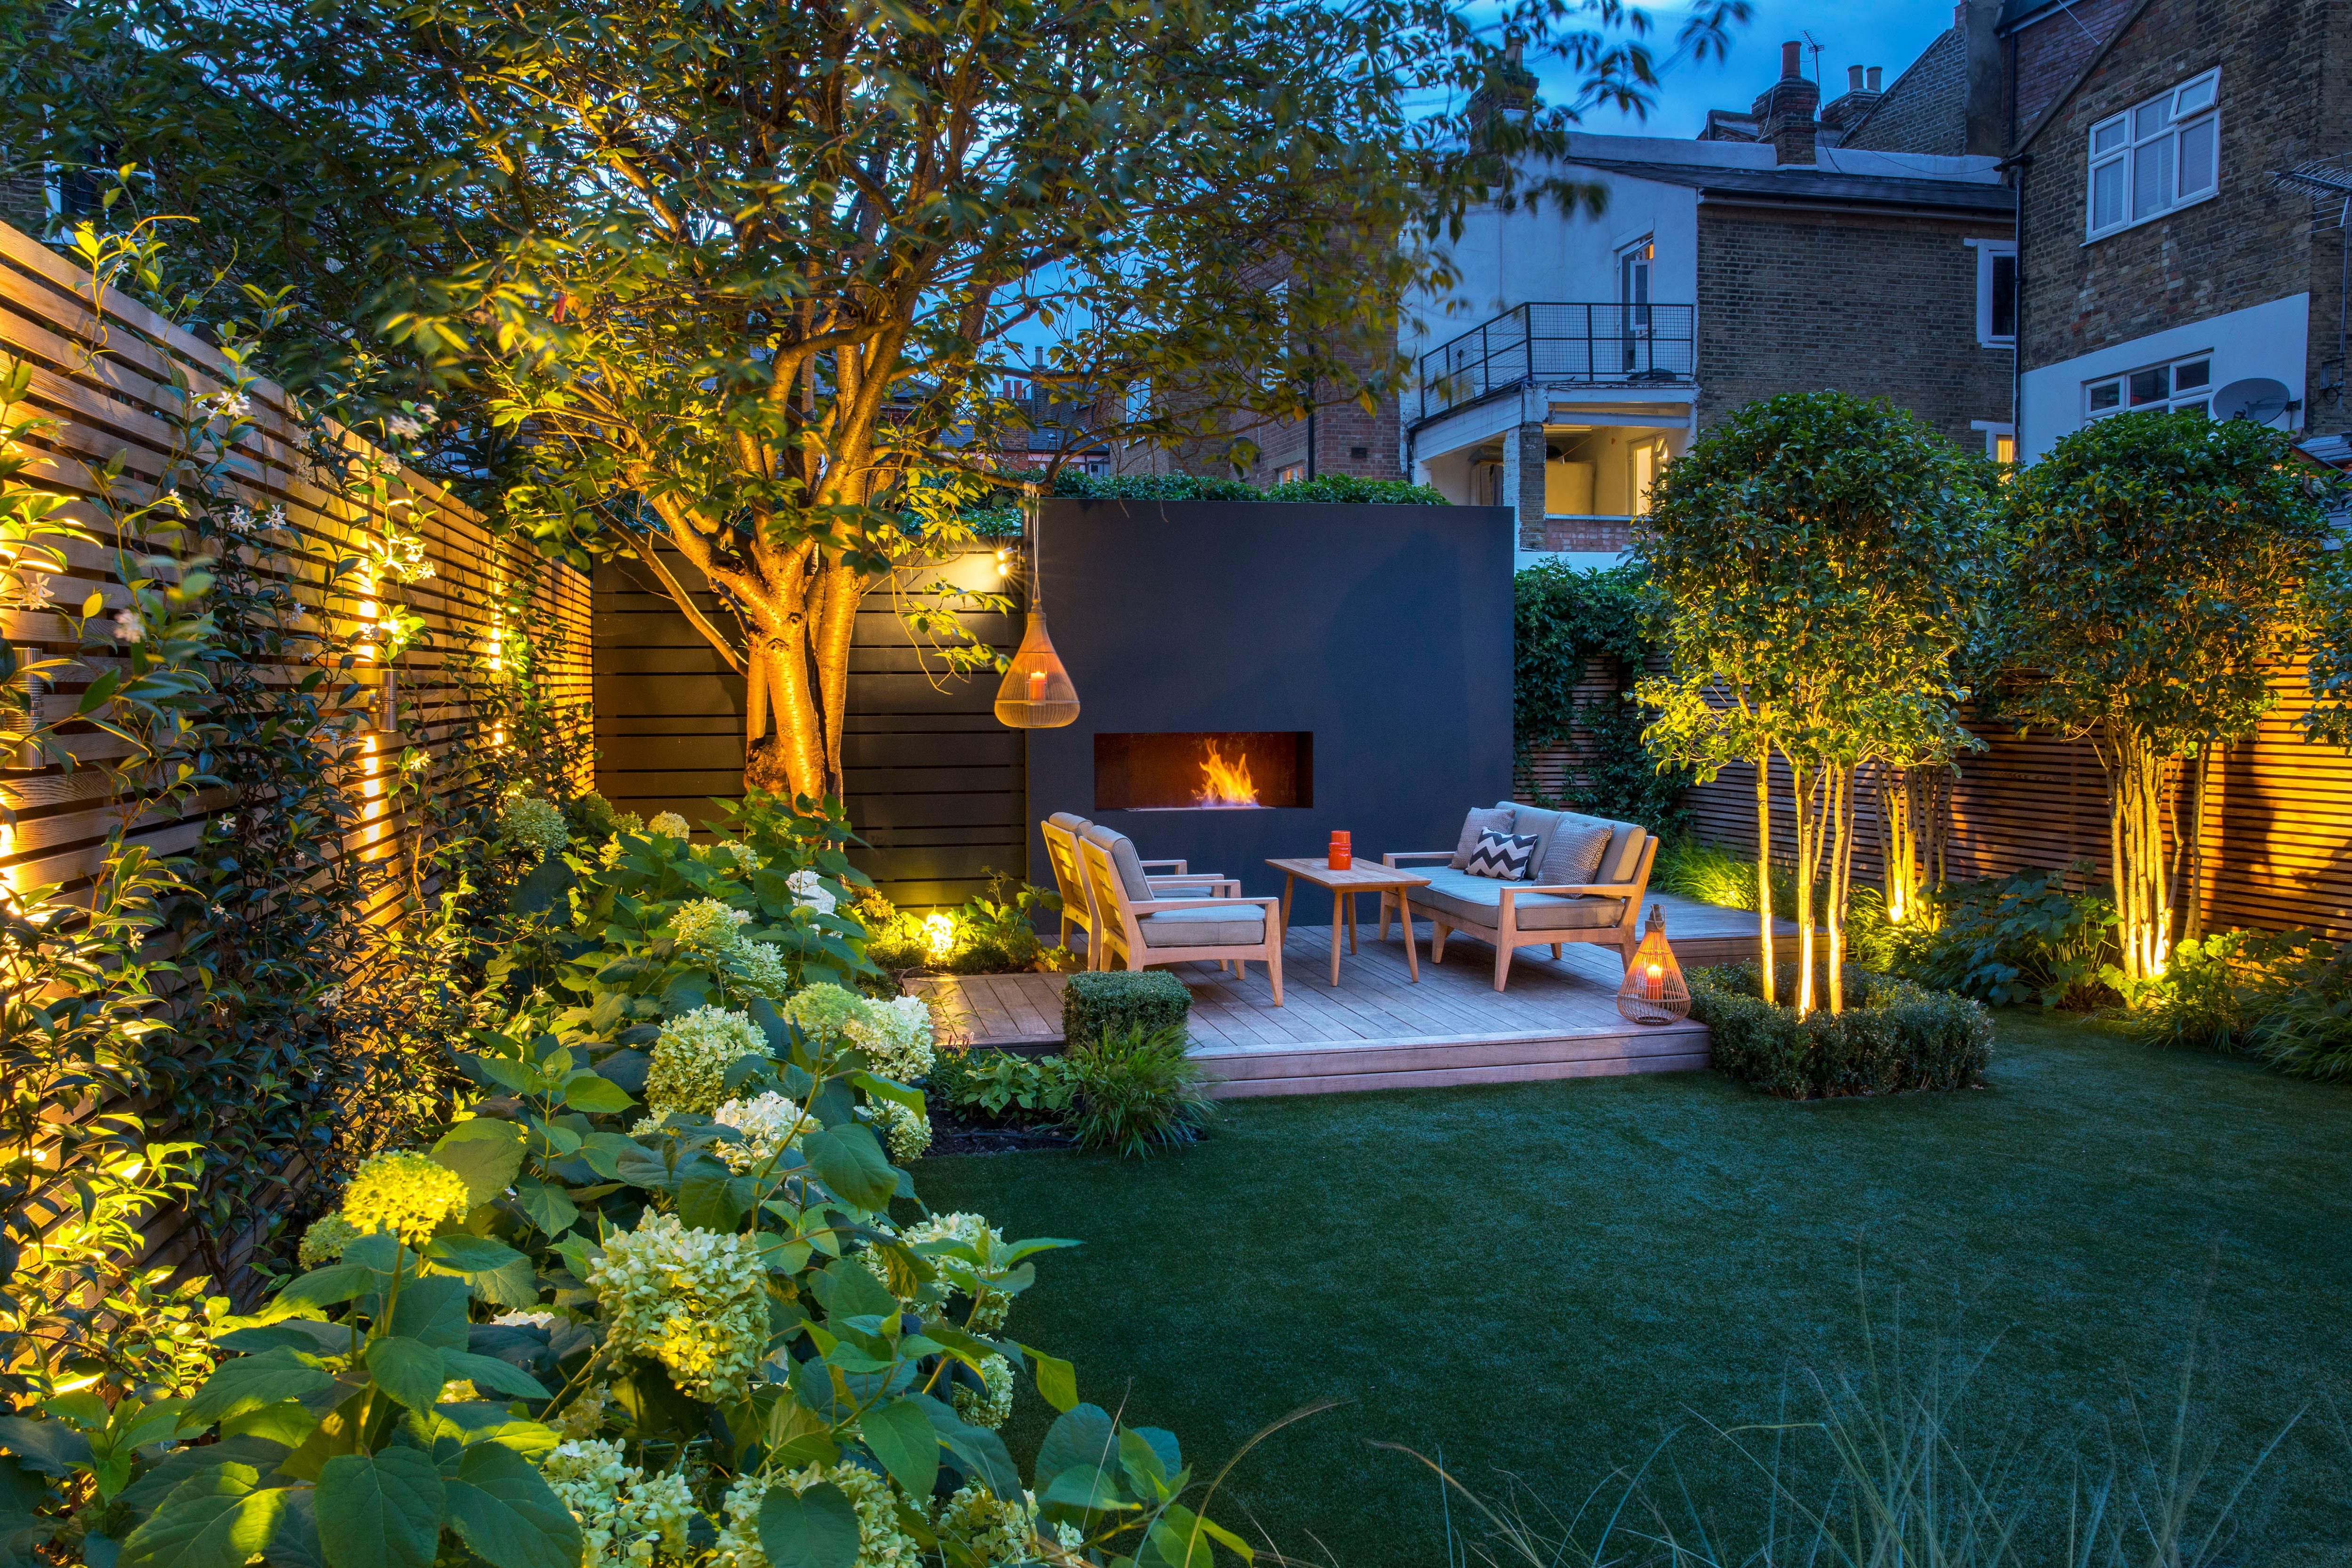 Back garden design London - Garden Club London